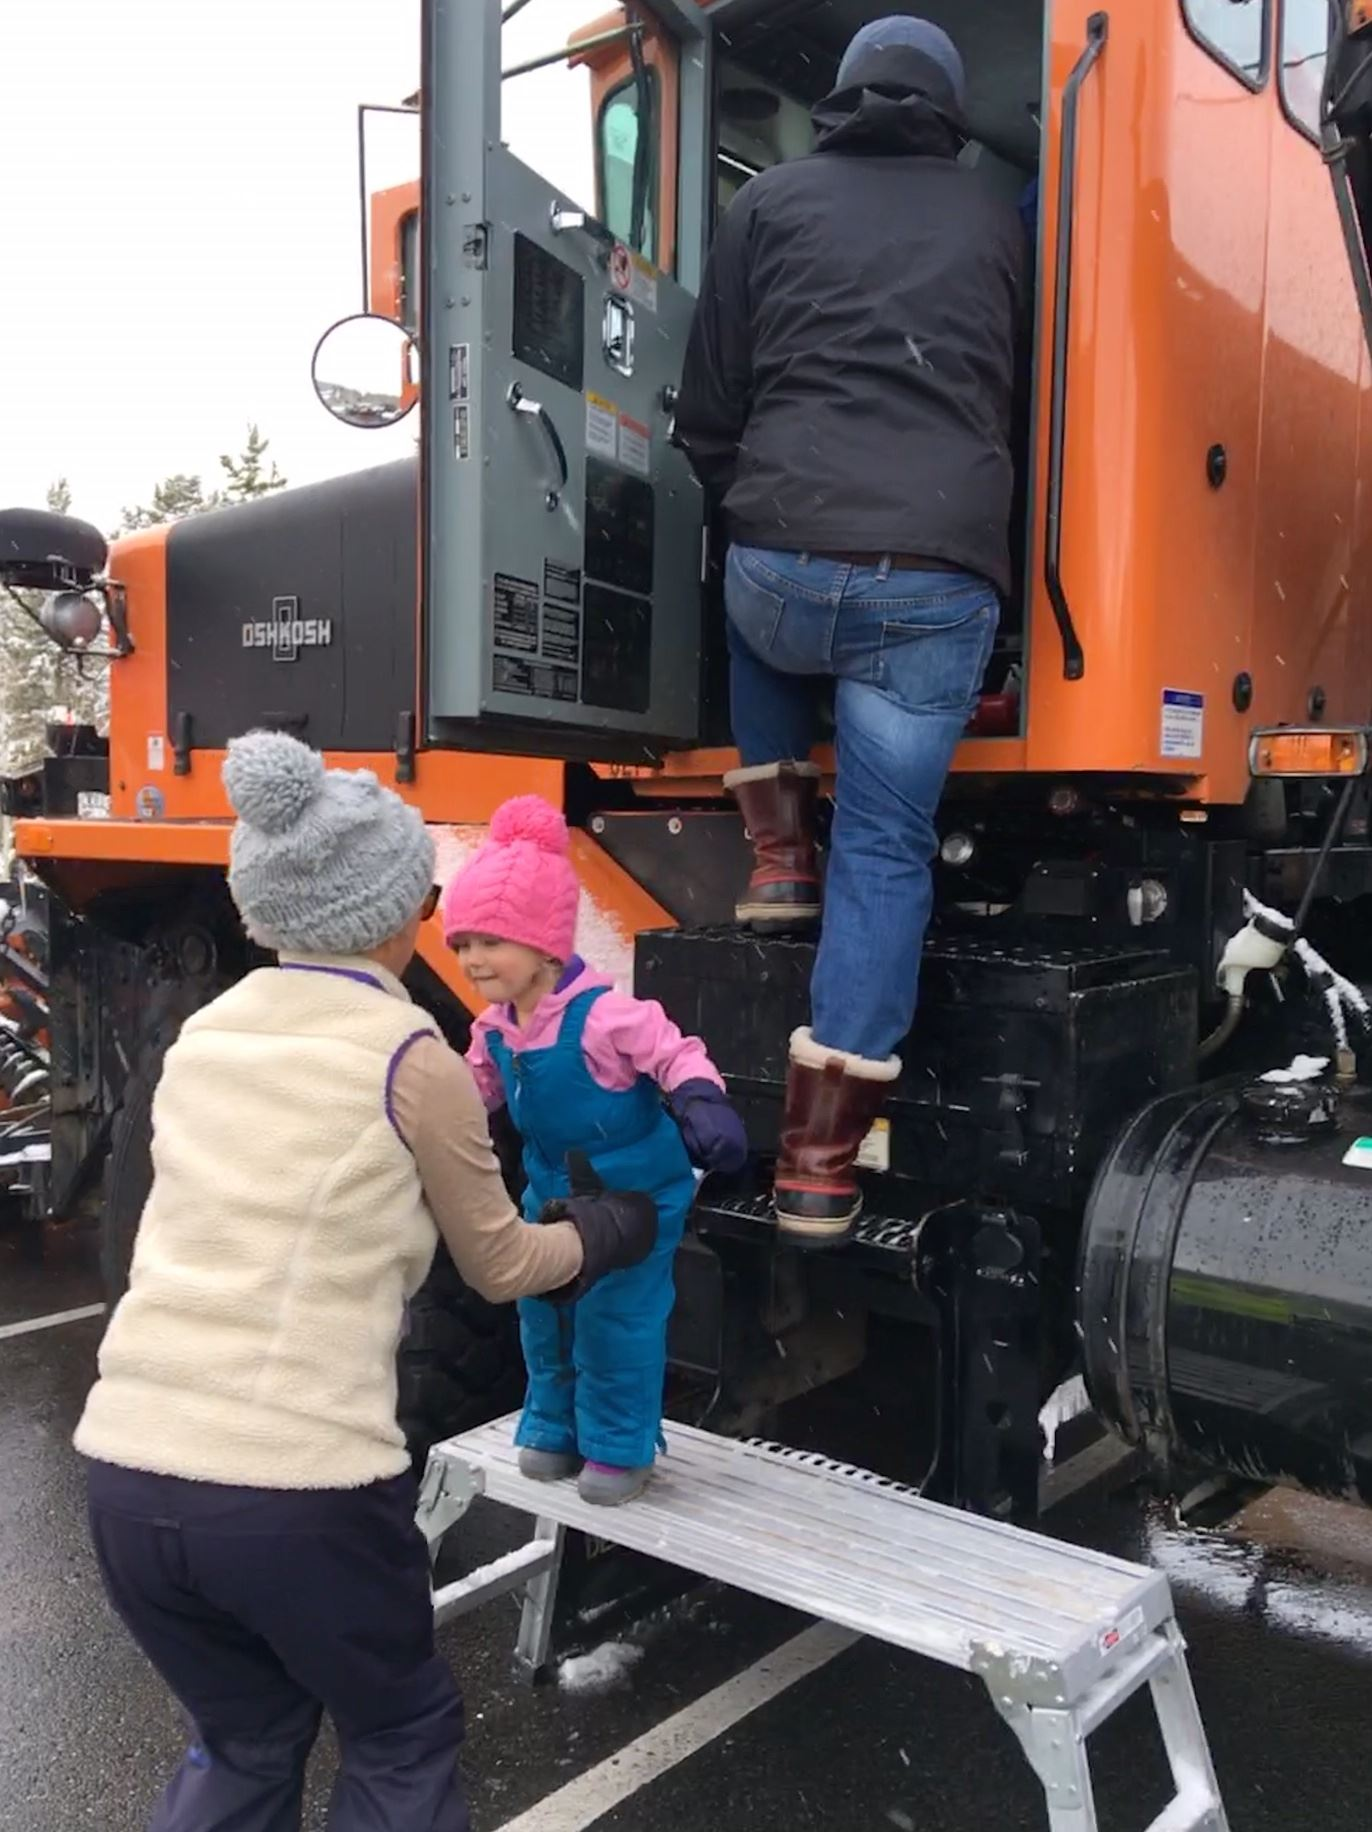 A woman helps a little girl out of a snow plow.